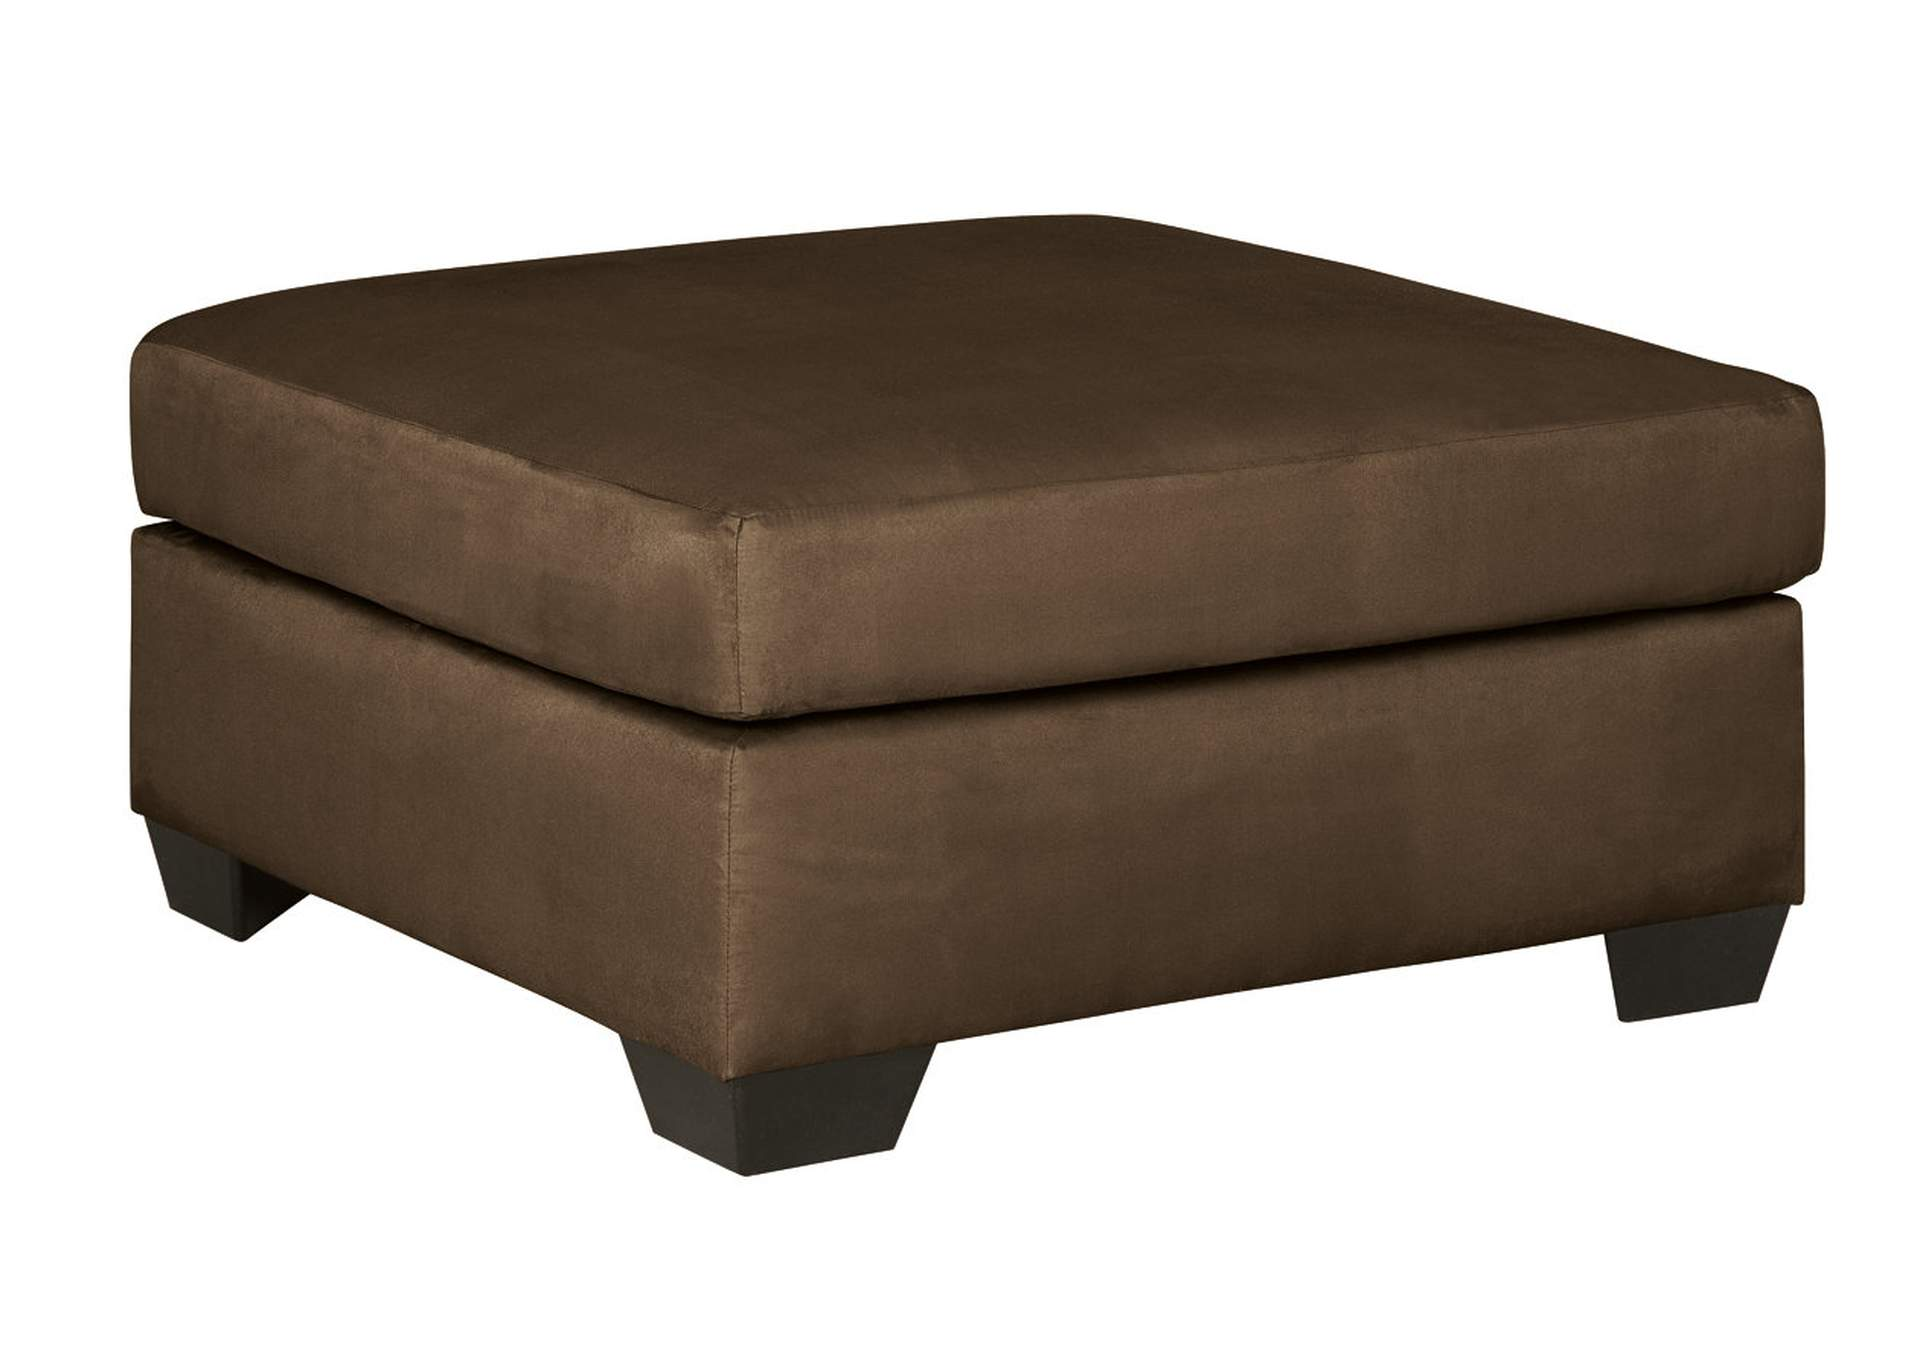 Darcy Cafe Oversized Accent Ottoman,Signature Design By Ashley